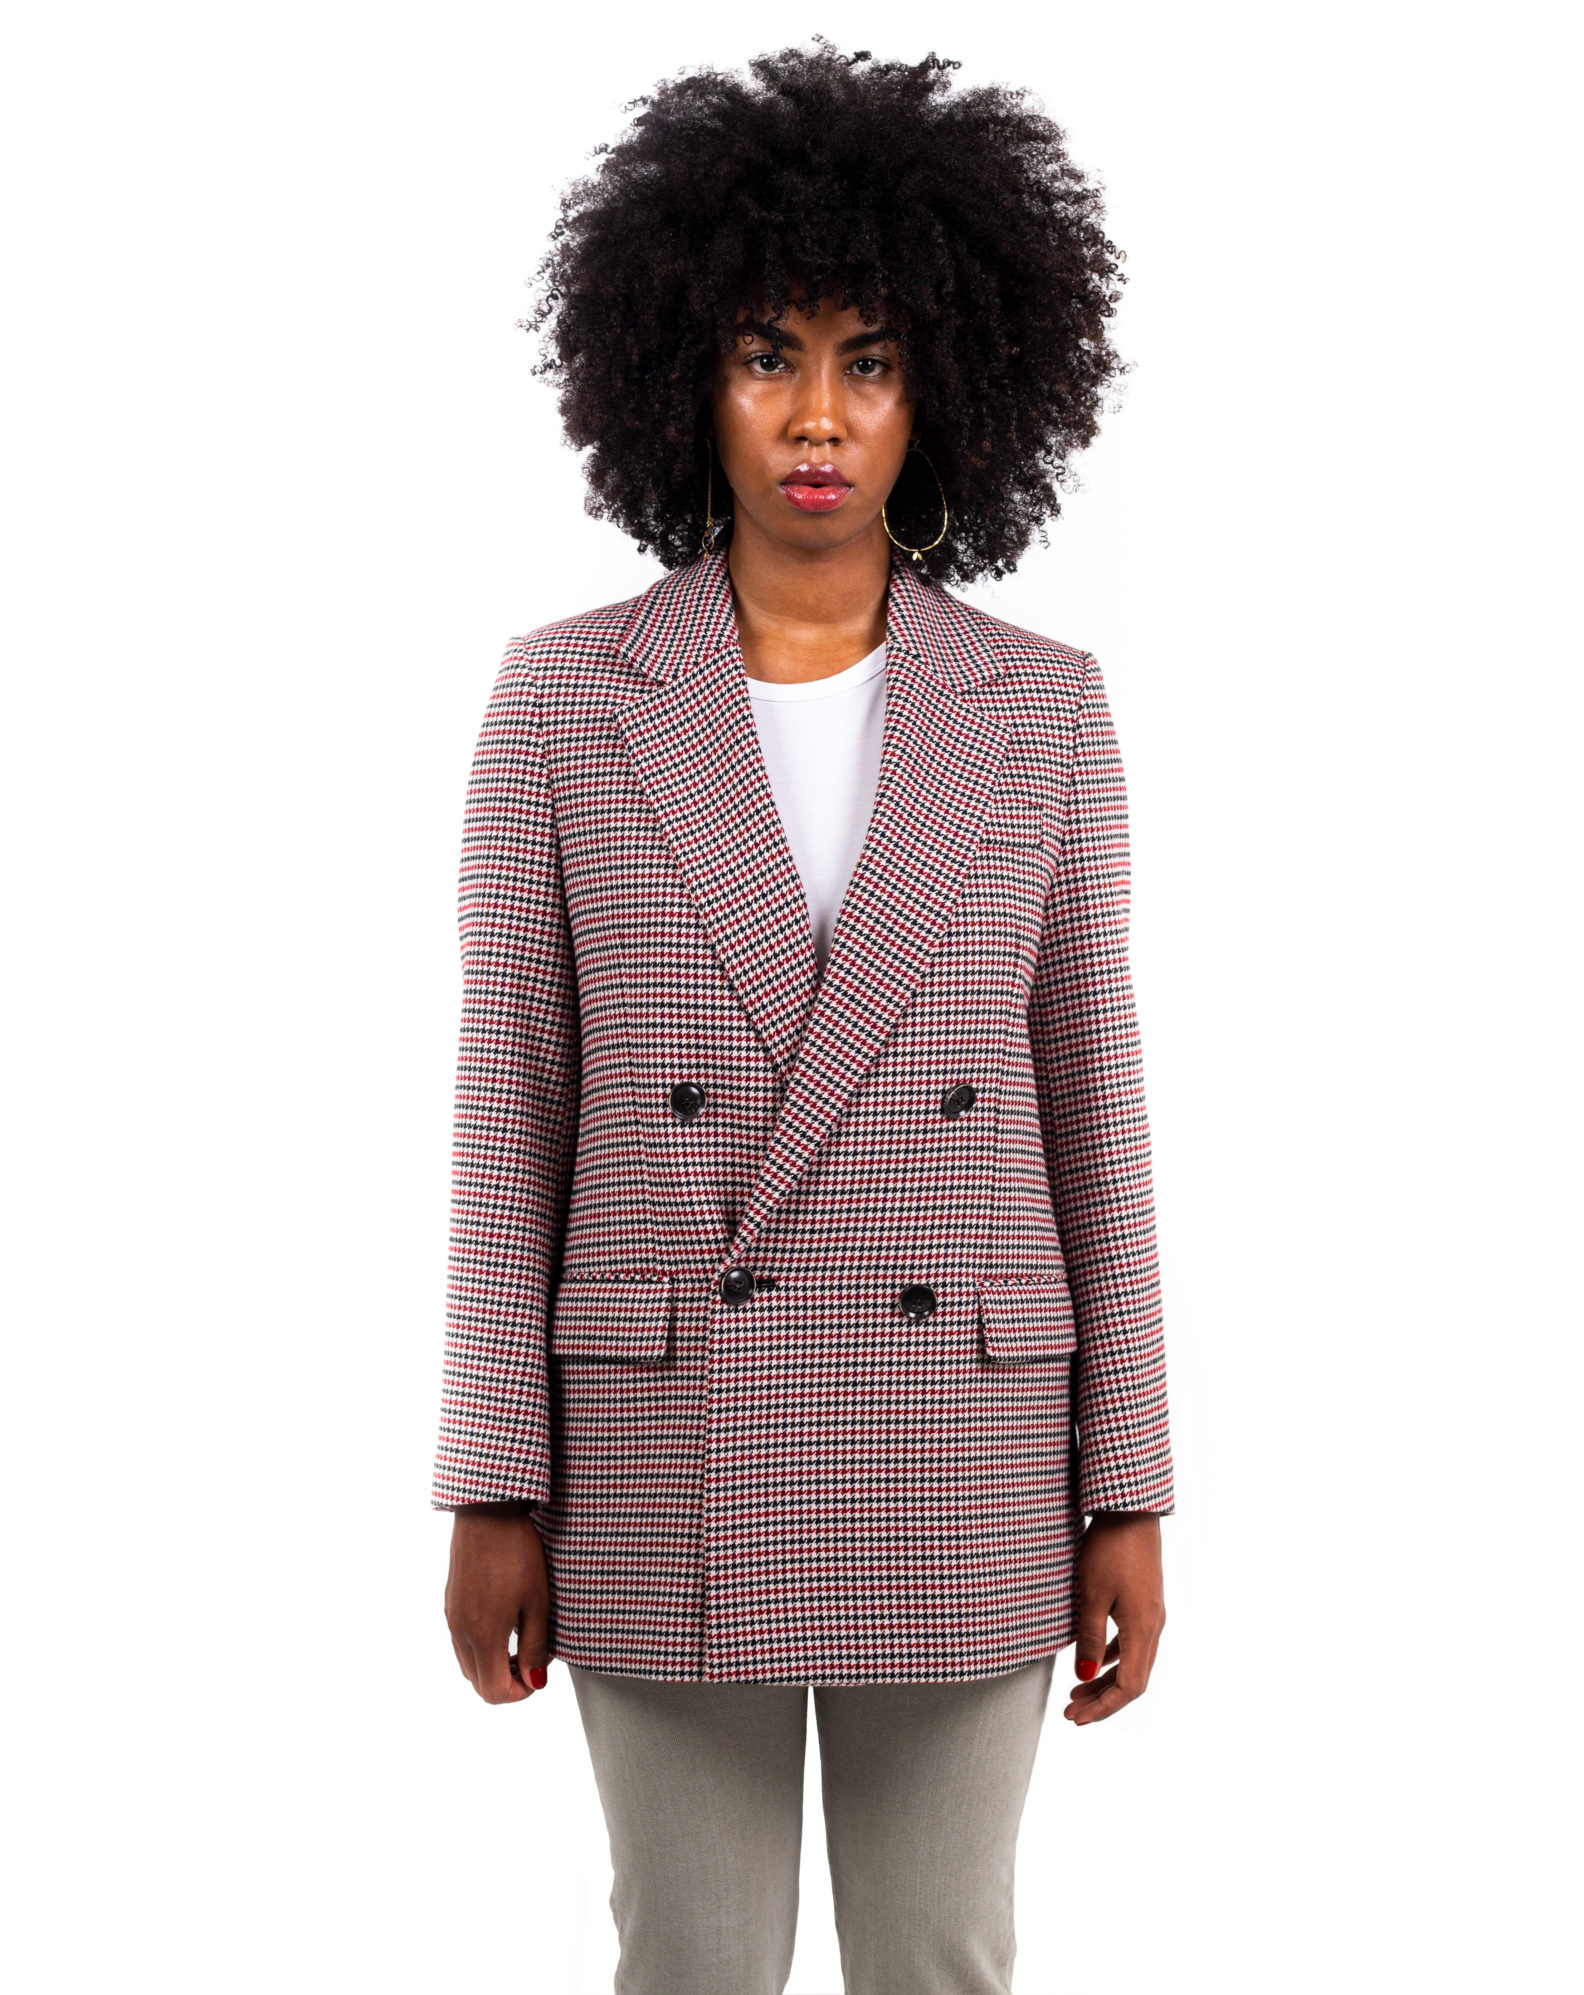 blazer-long-croise-masculin-pied-de-poule-dossier-zero-affaires-etrangeres-dog-tooth-double-braisted